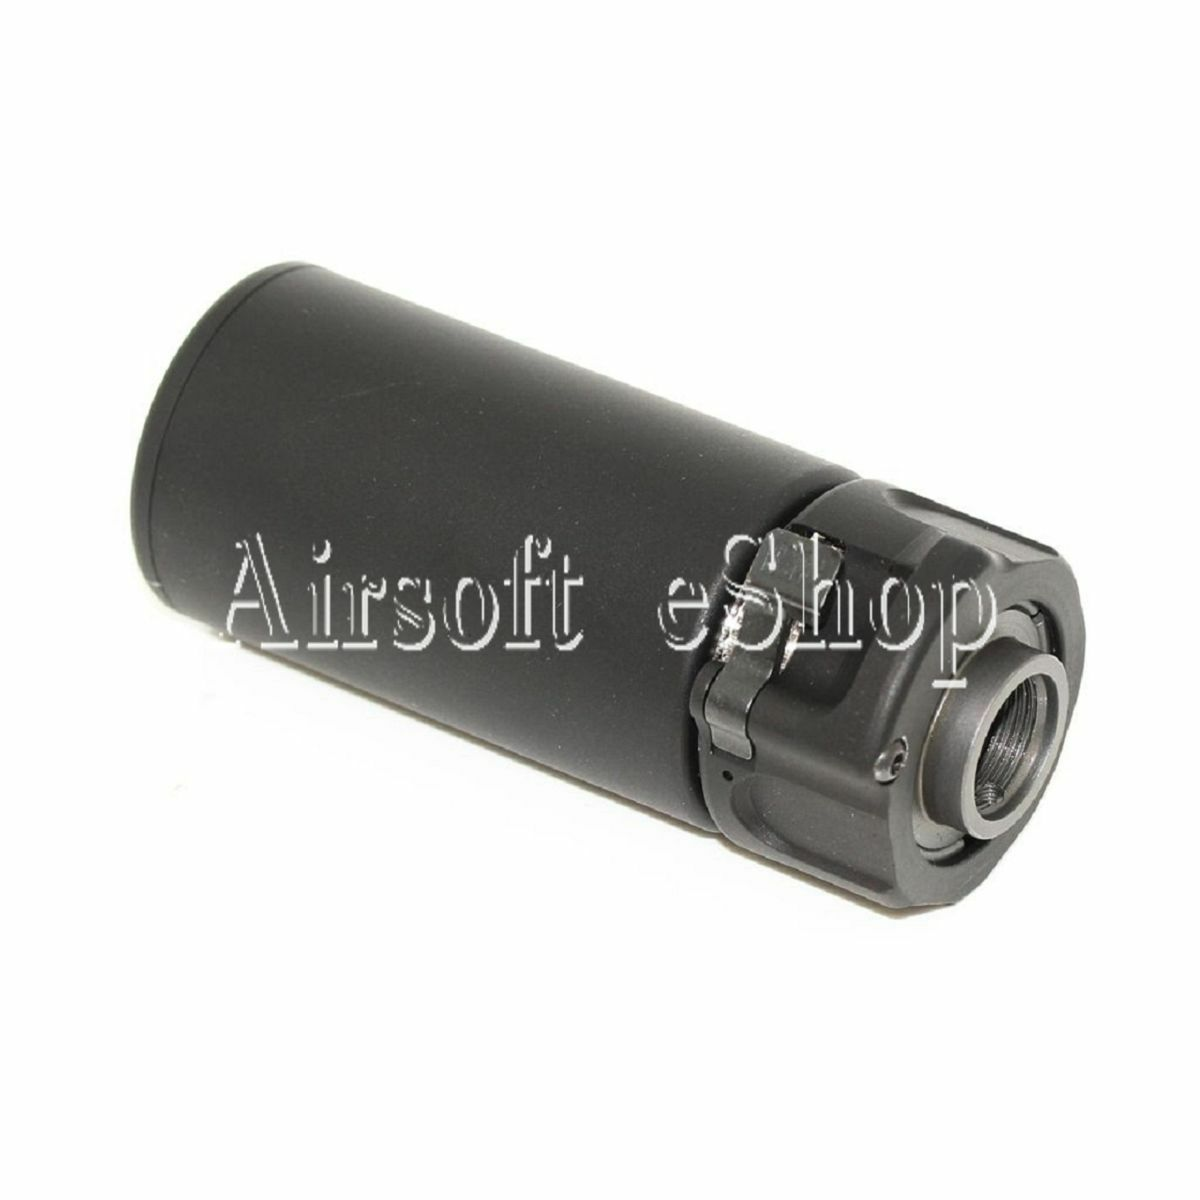 Airsoftmega 5KU QD MINI Airsoft soppressore con 14 mm flashider Nero